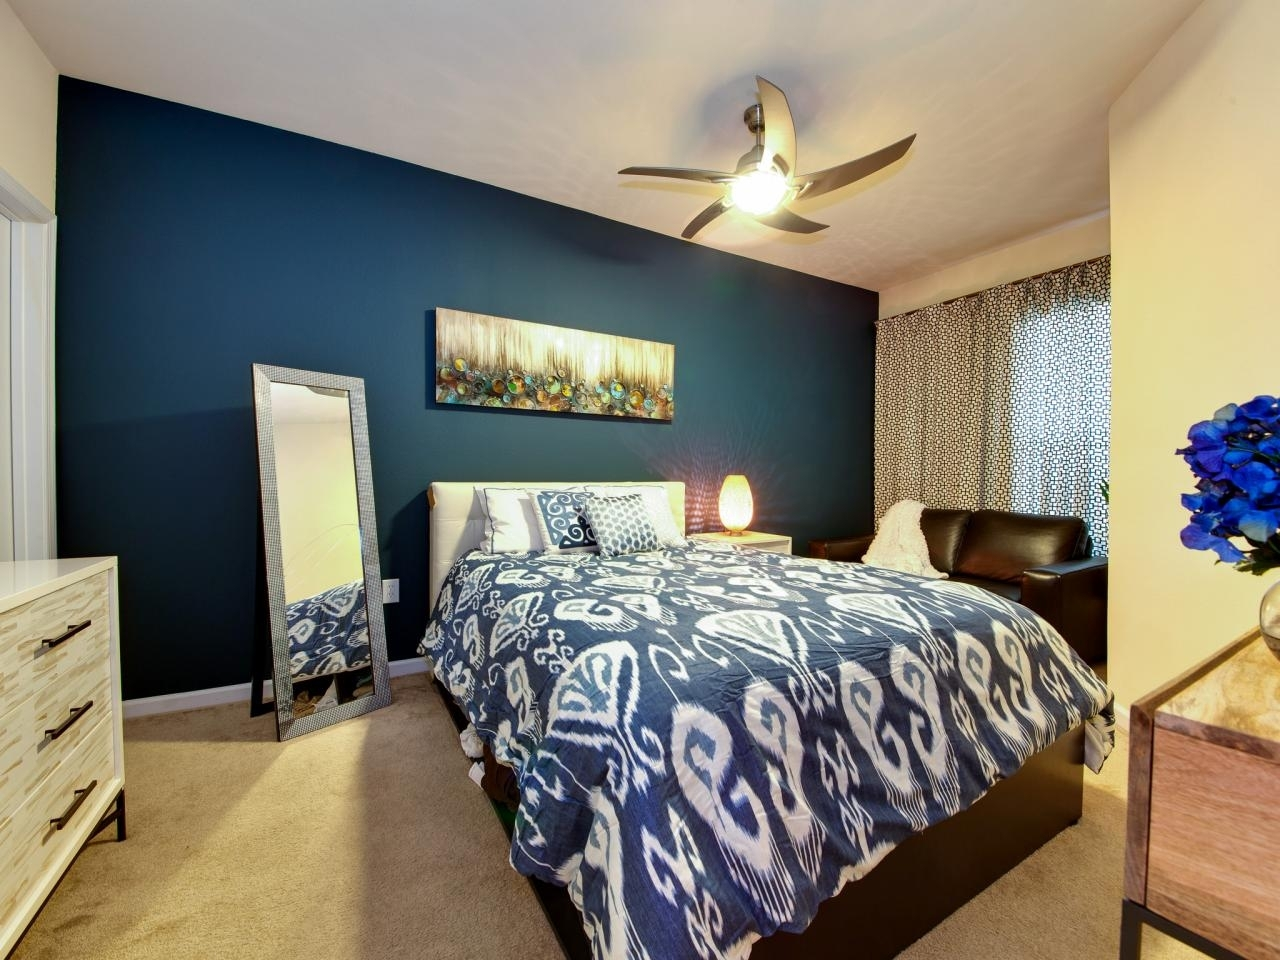 Bedroom | Navy Blue Wall Accent With Wheat Color Base Combination Intended For Most Popular Wall Accents Color Combinations (View 6 of 15)